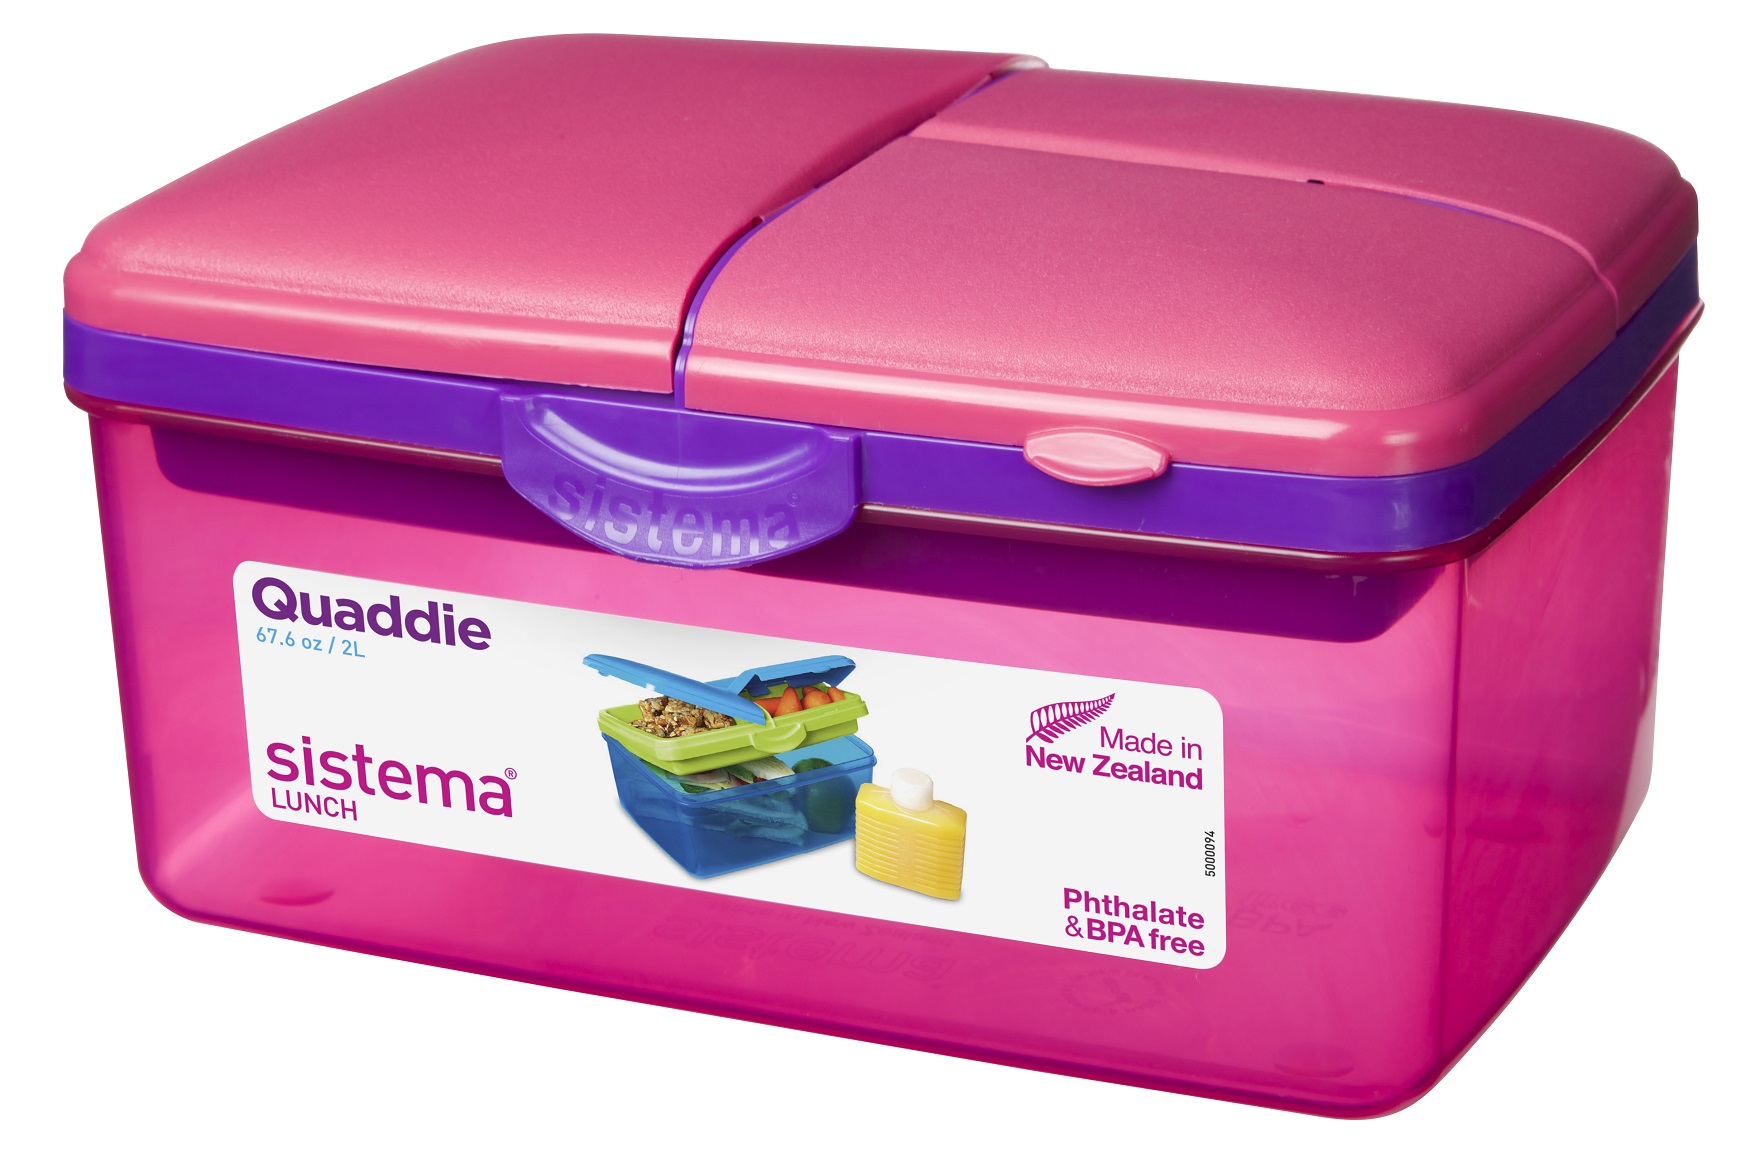 Freezer Containers Bpa Free Click an Image to Enlarge